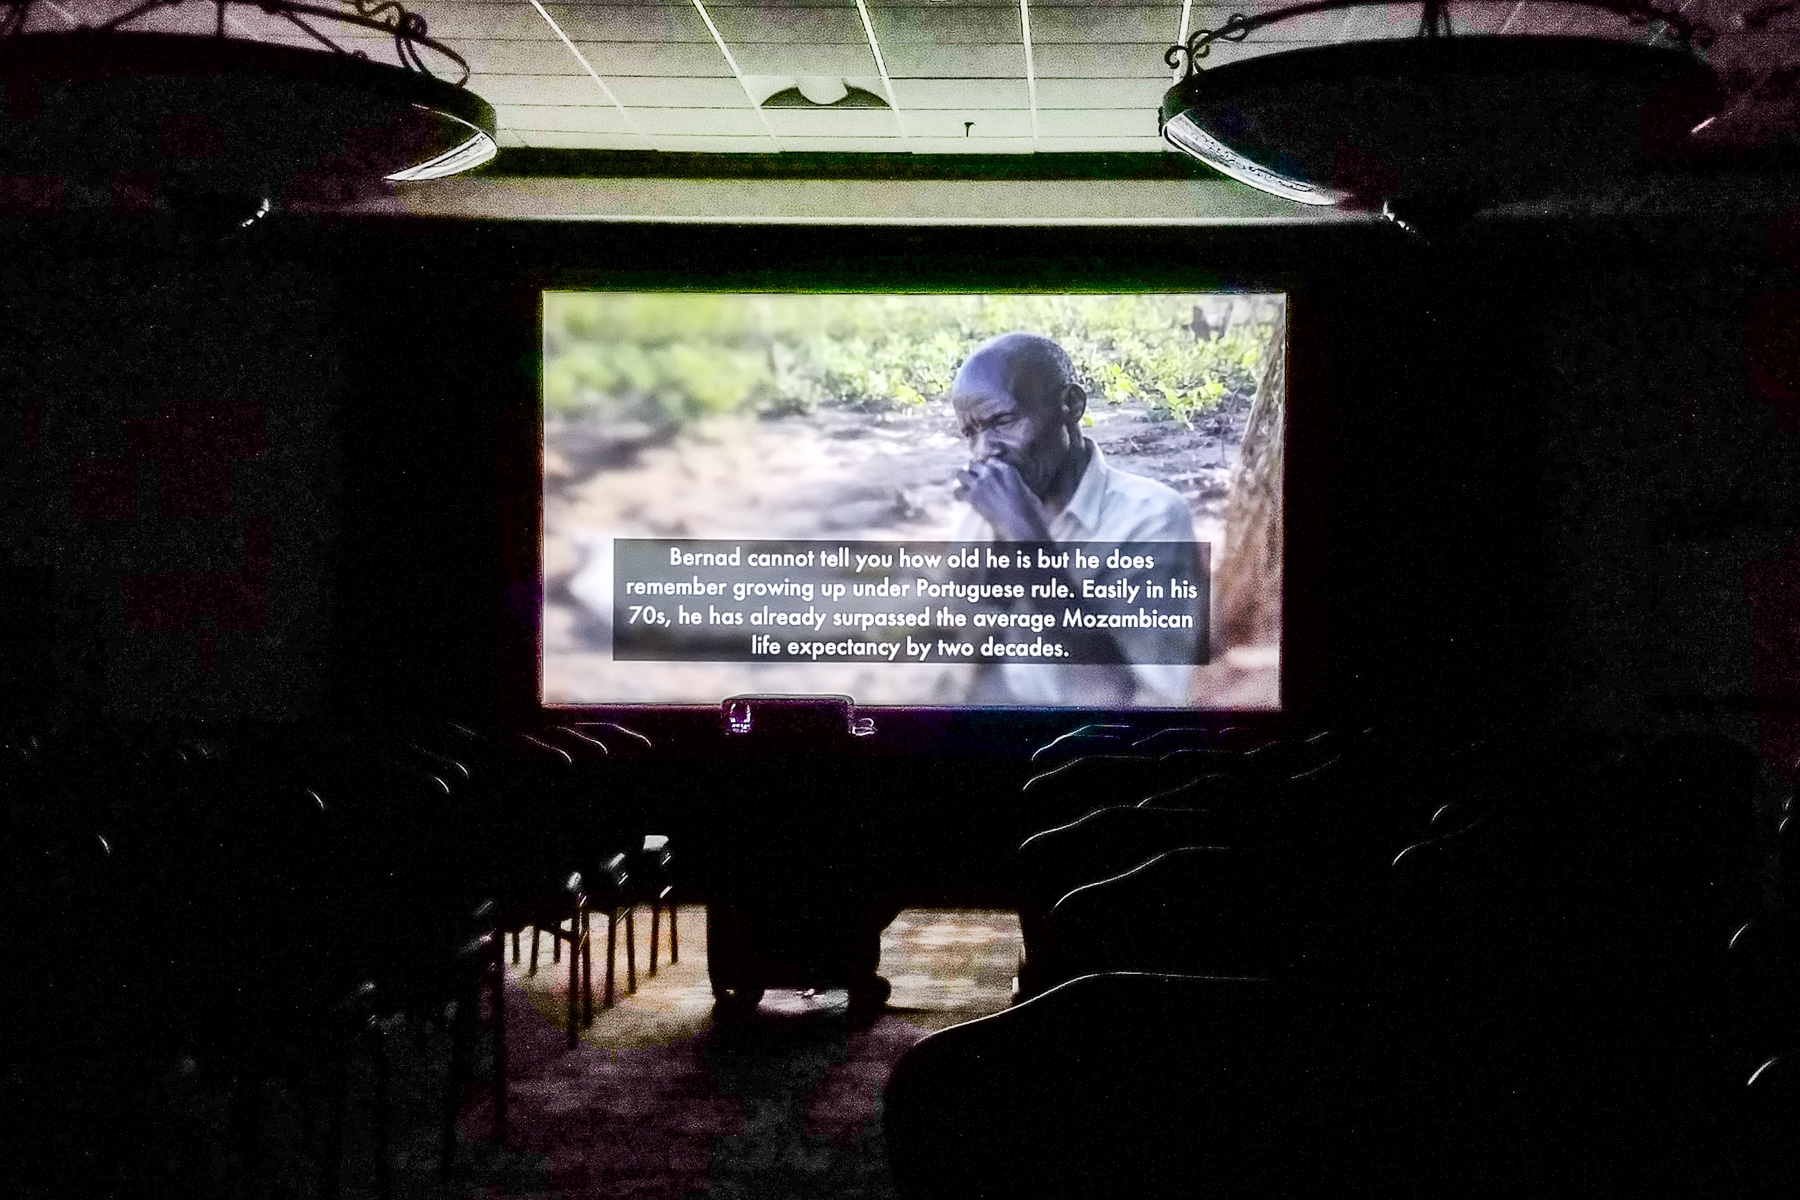 My film played to an empty theater on Monday afternoon.